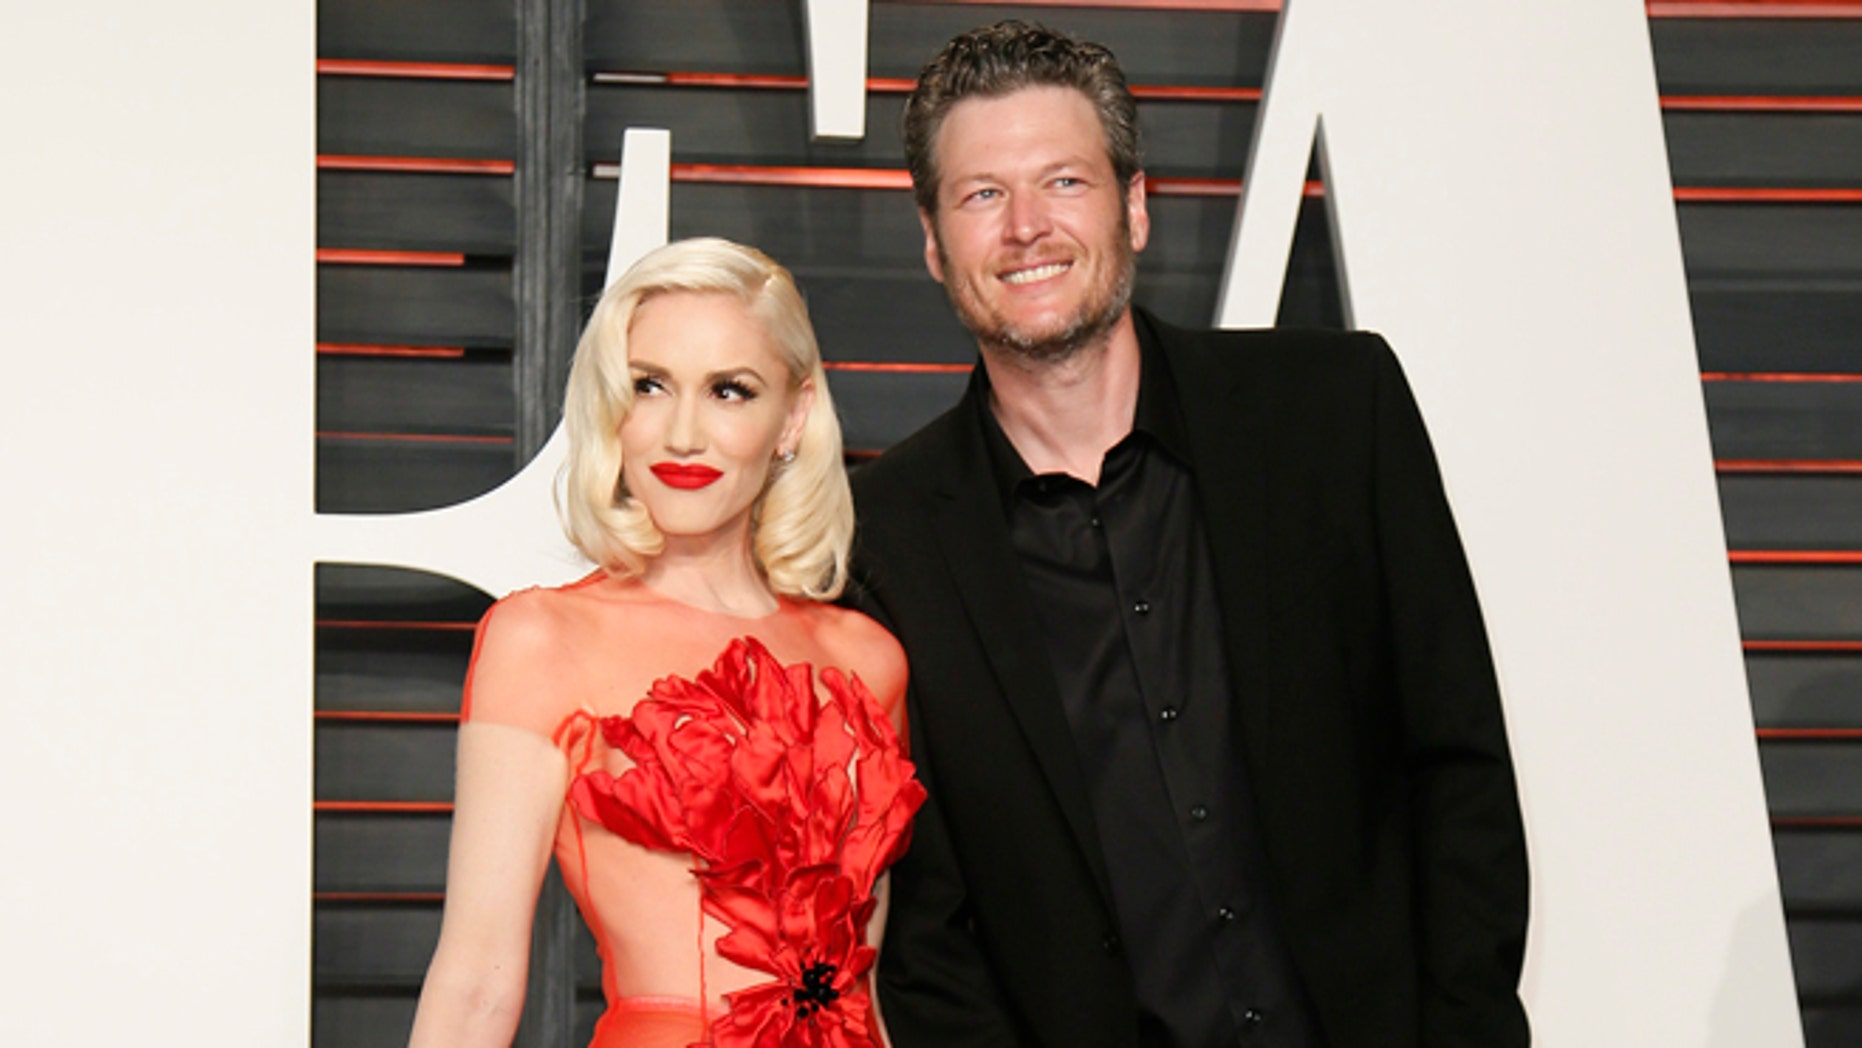 Gwen Stefani posted adorable throwback photos of Blake Shelton to celebrate his birthday.